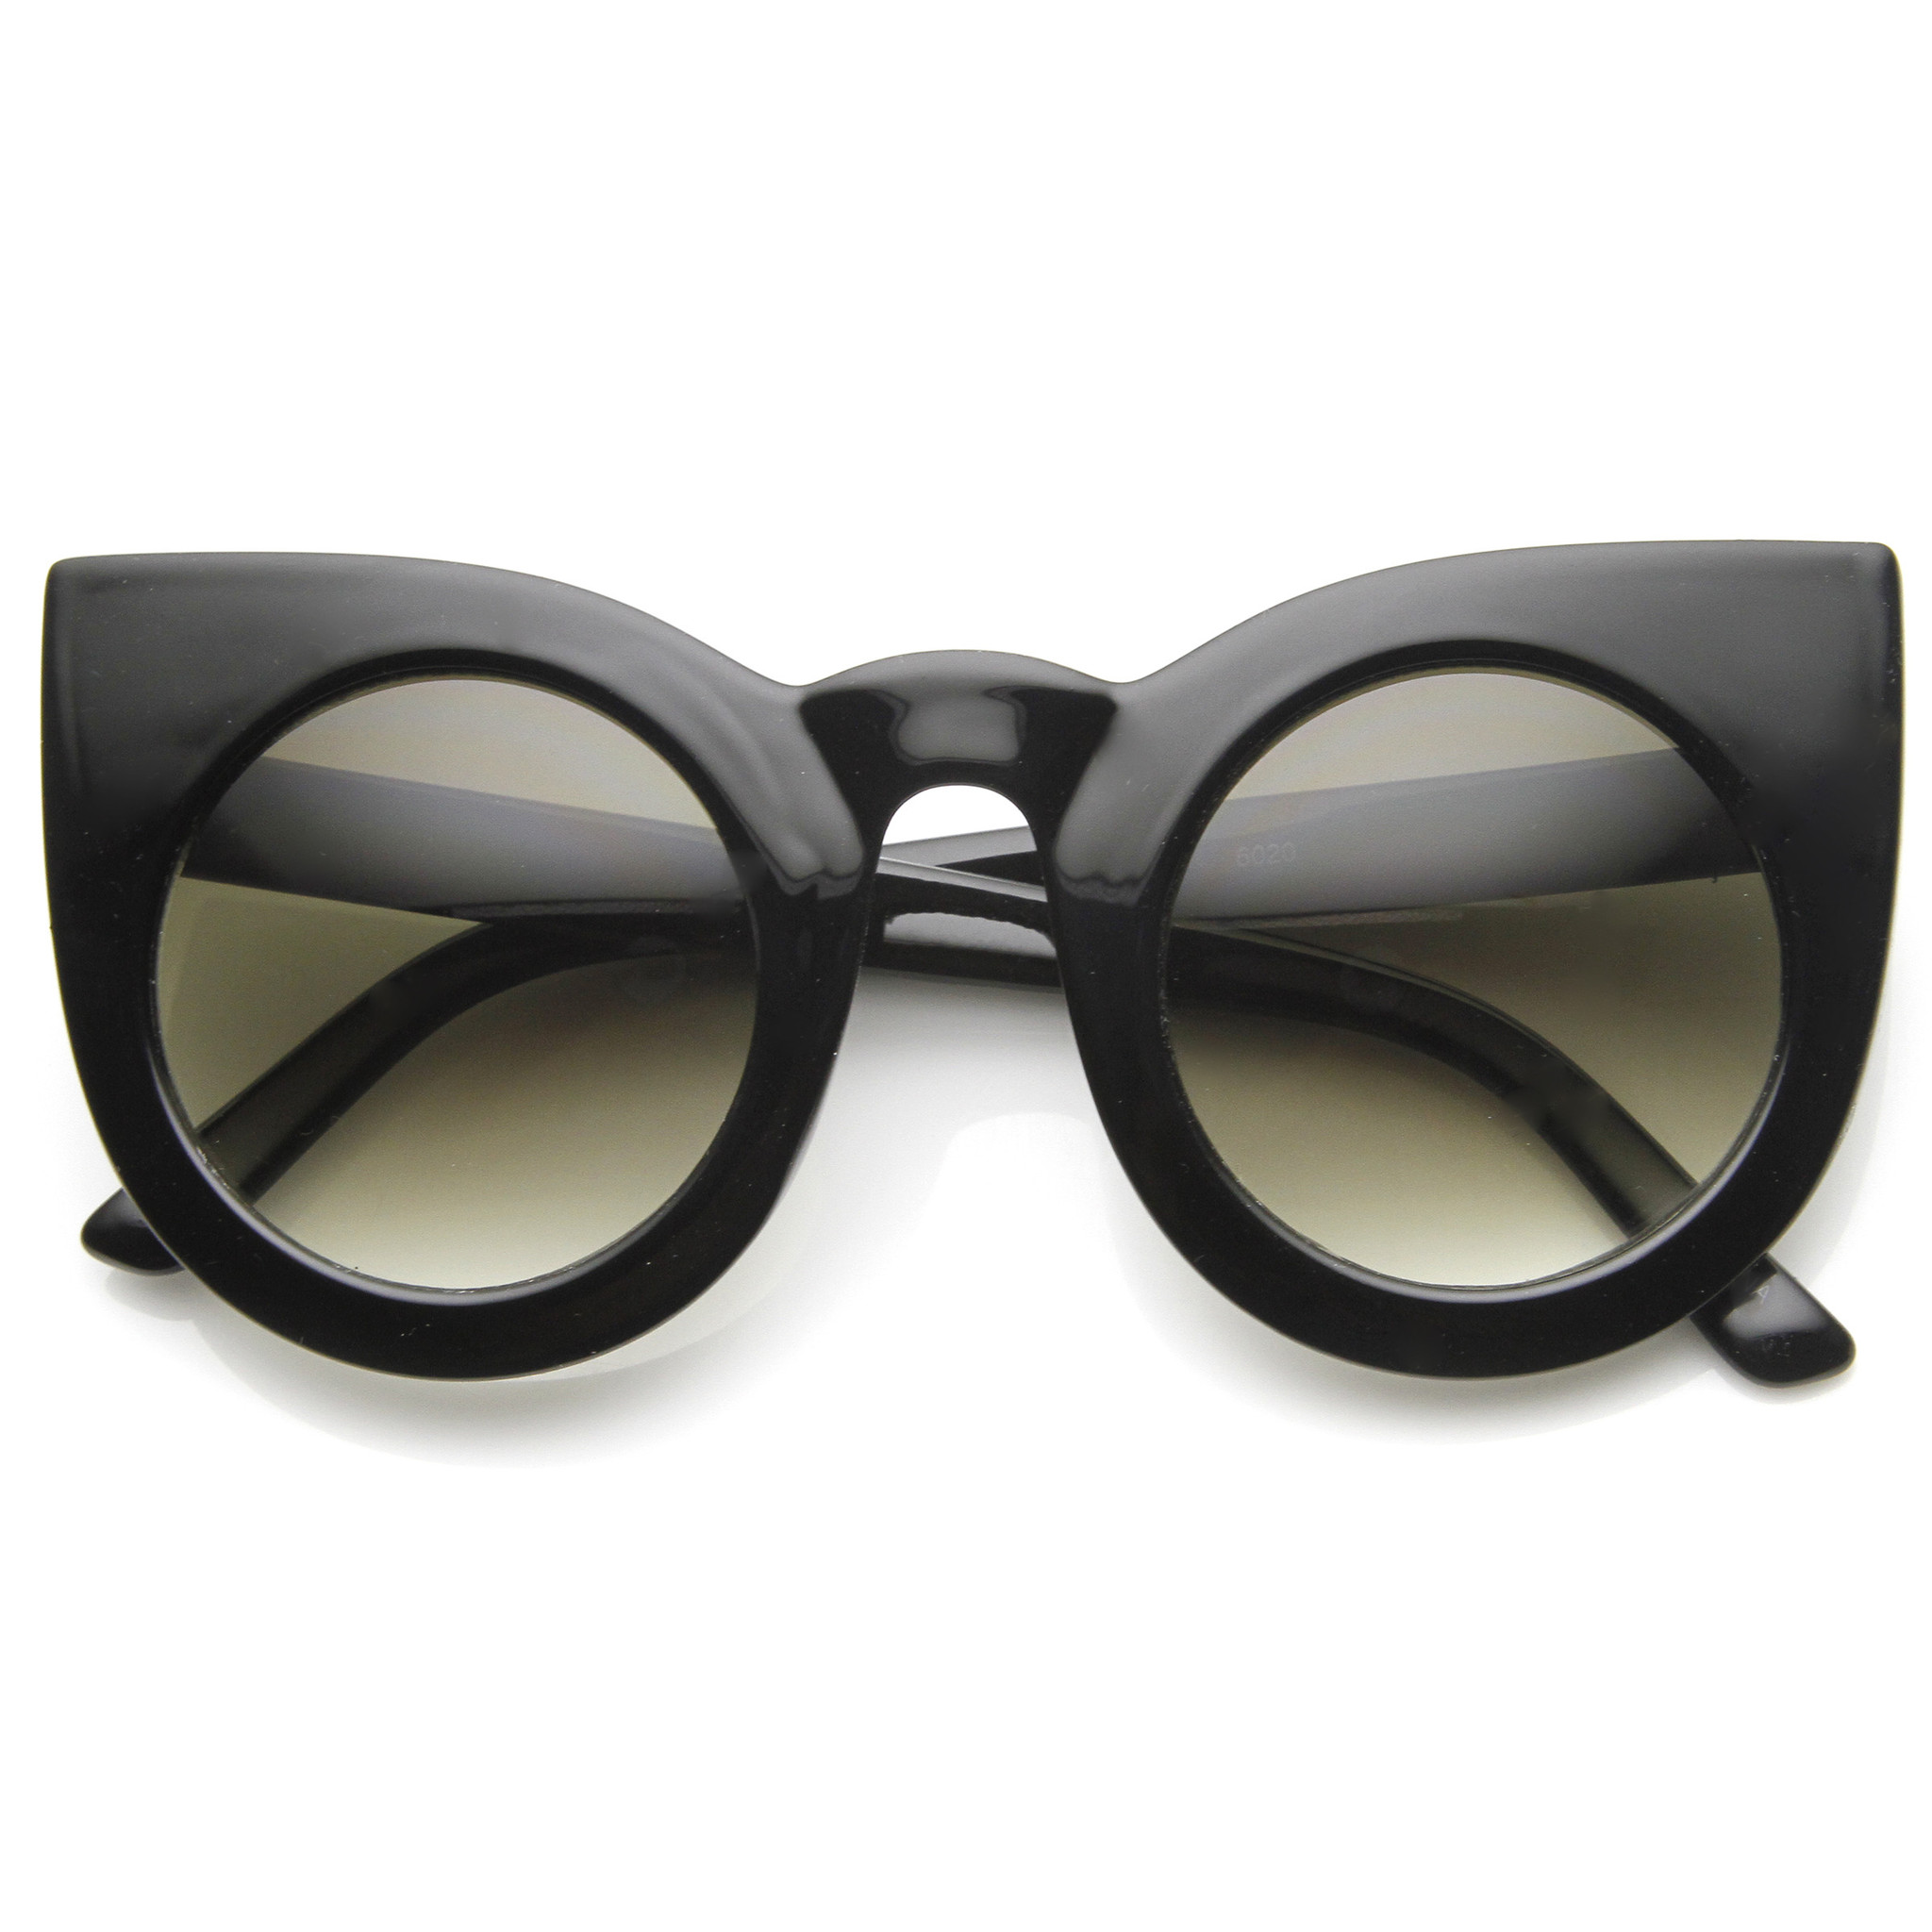 Designer inspired large round circle pointed cat eye sunglasses 9180